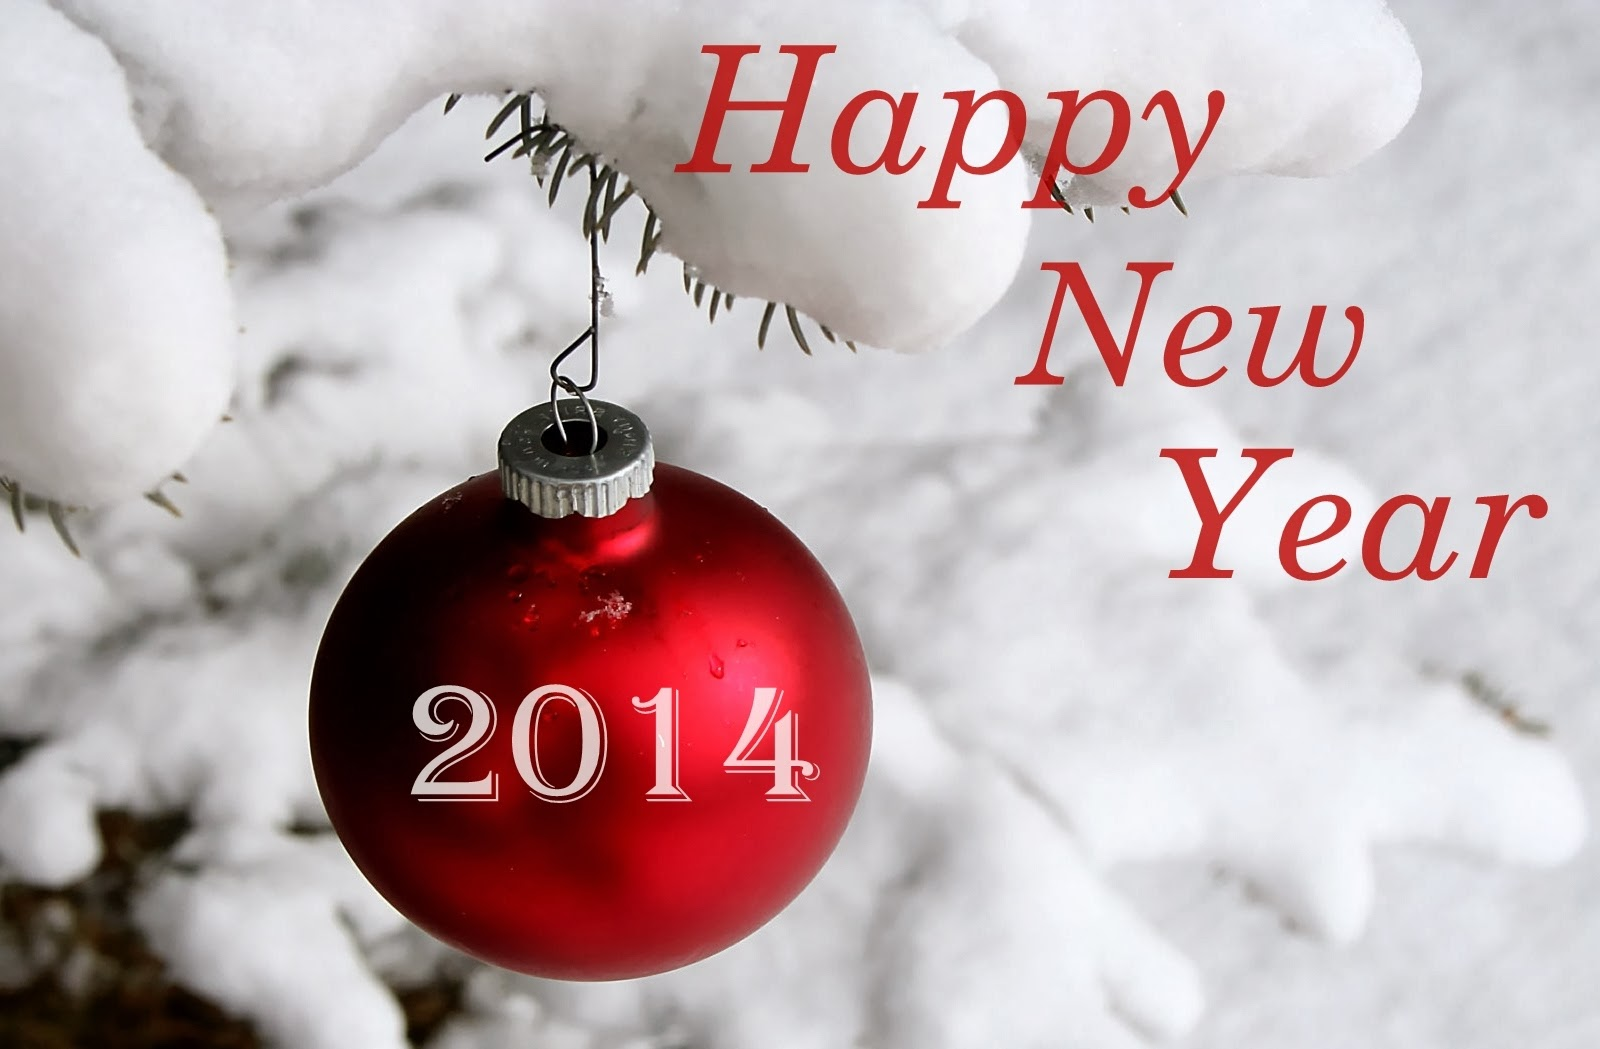 New Year 2014 Happy New Year Wishes Wallpapers Photos 1600x1049